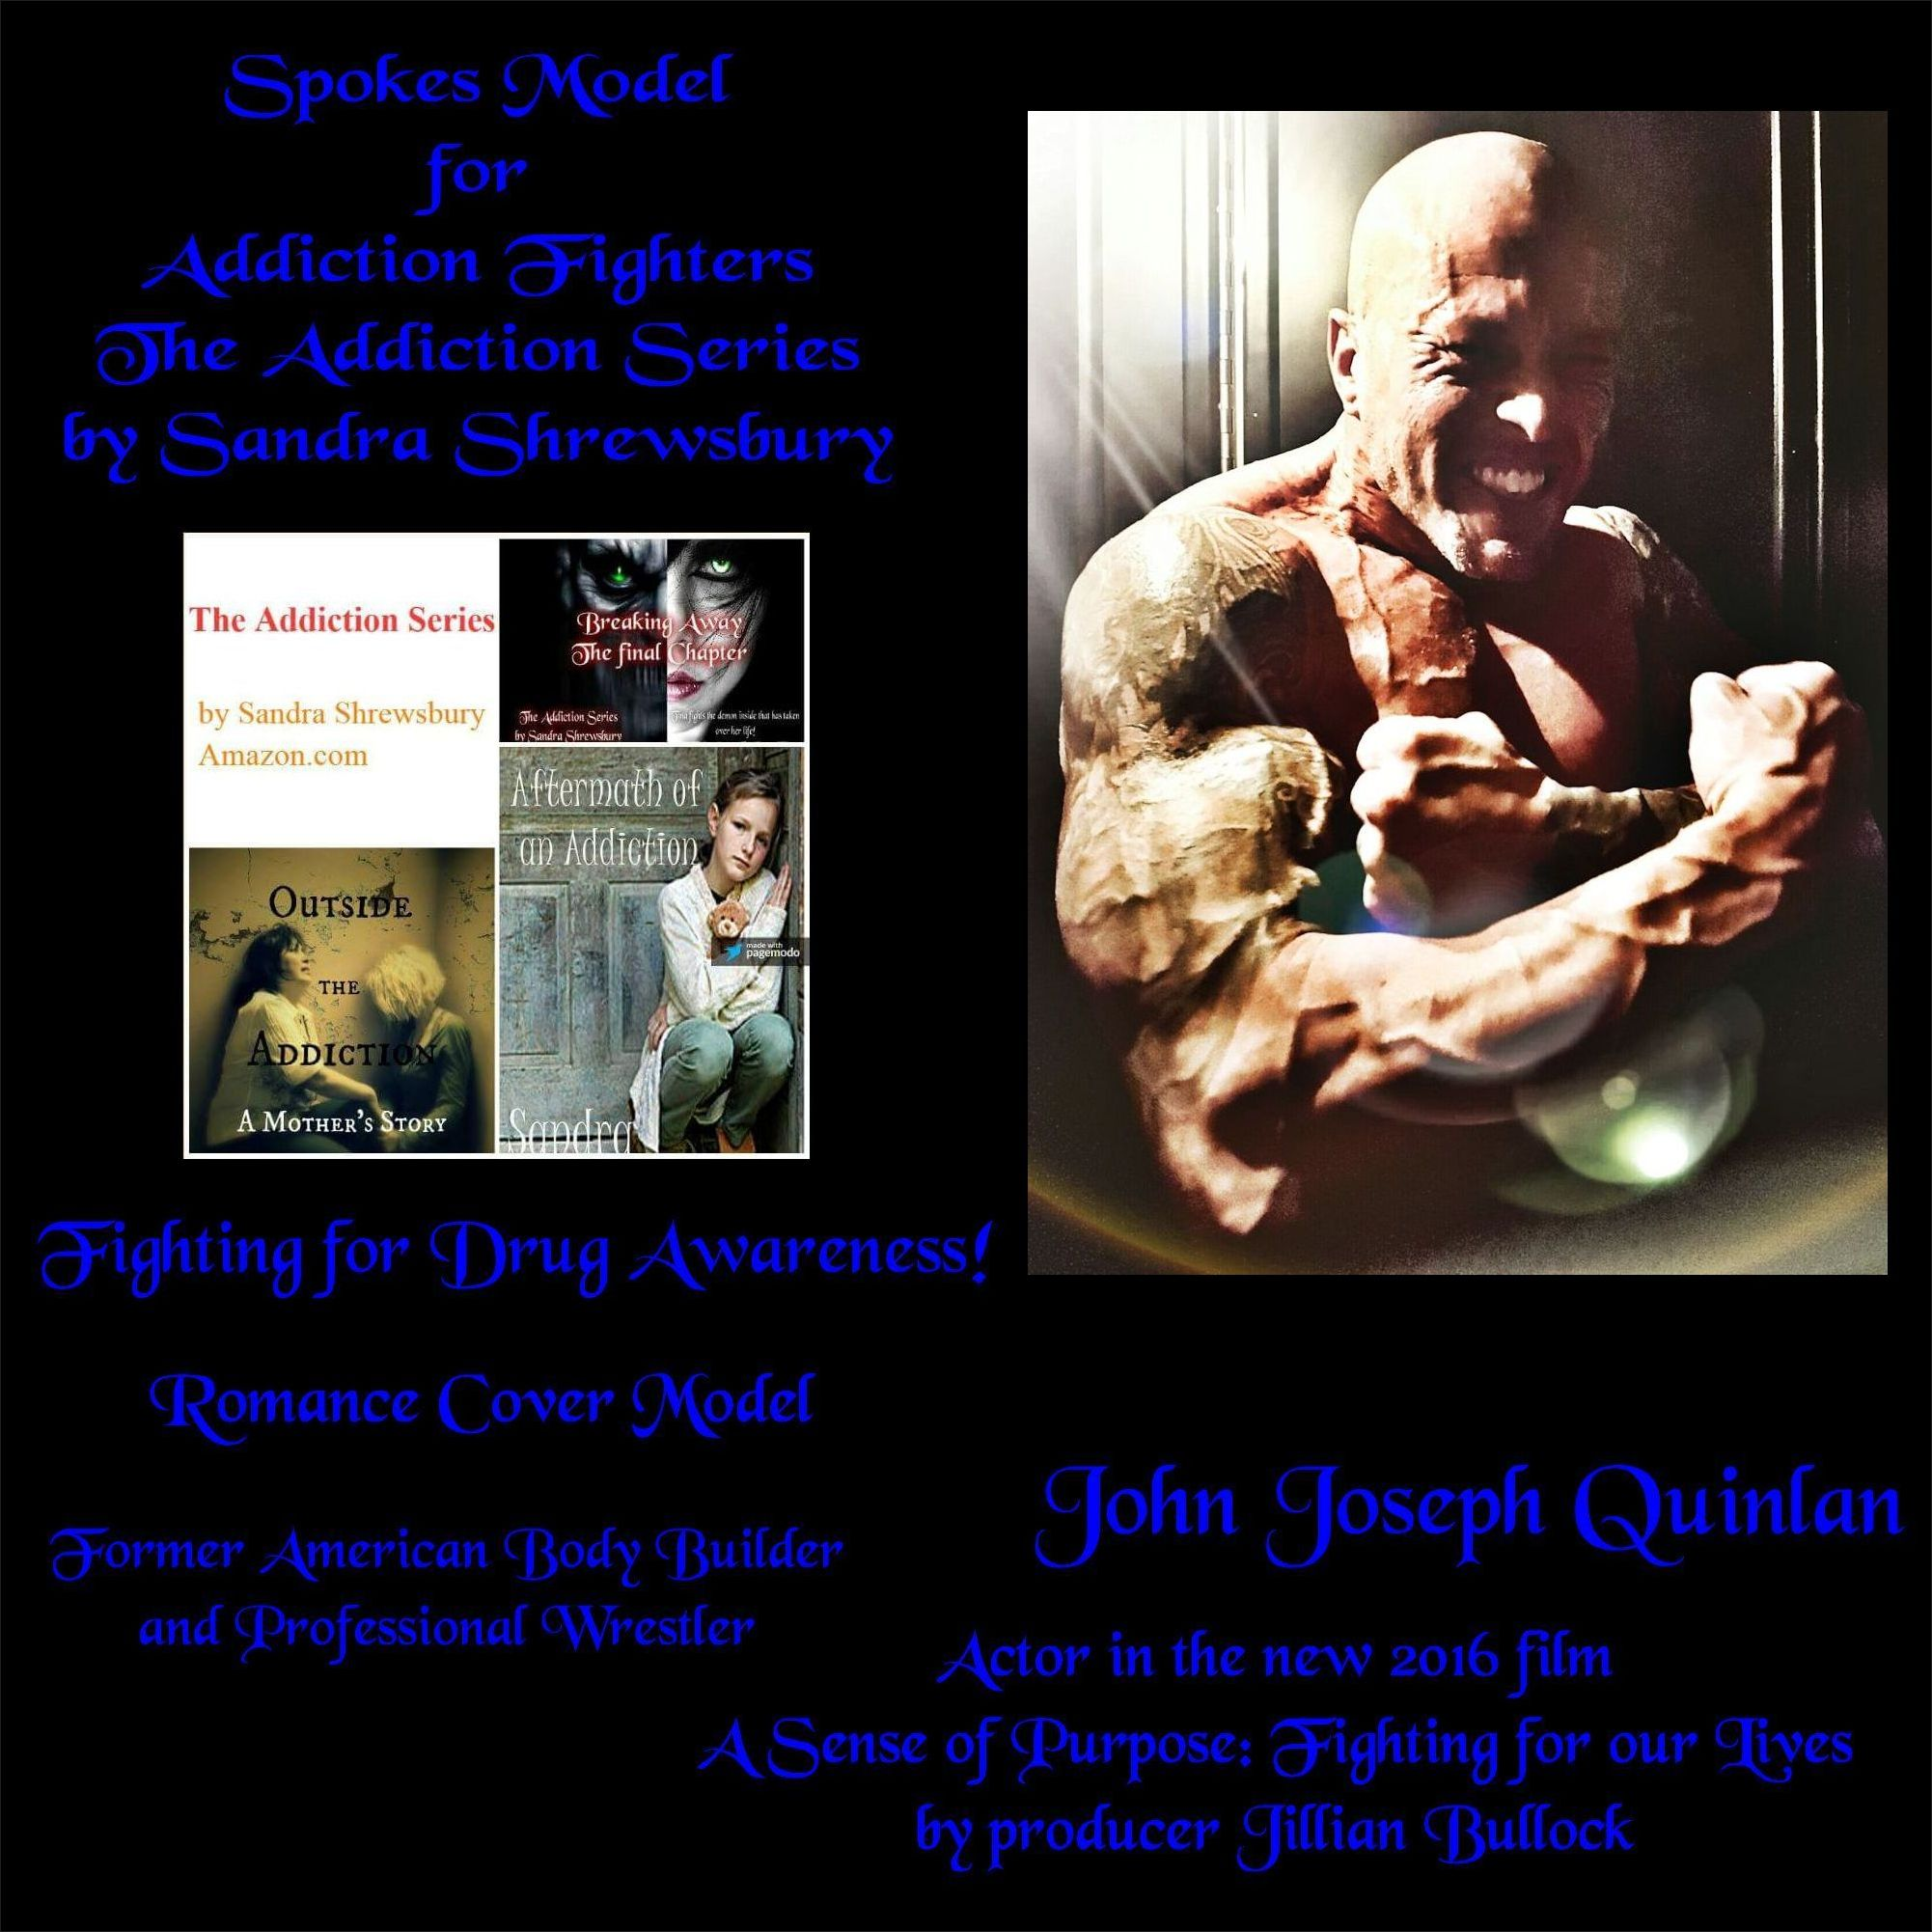 Addiction Series Celebrity Spokes Model & Actor John Joseph Quinlan by Shrewsbury #JohnQuinlan